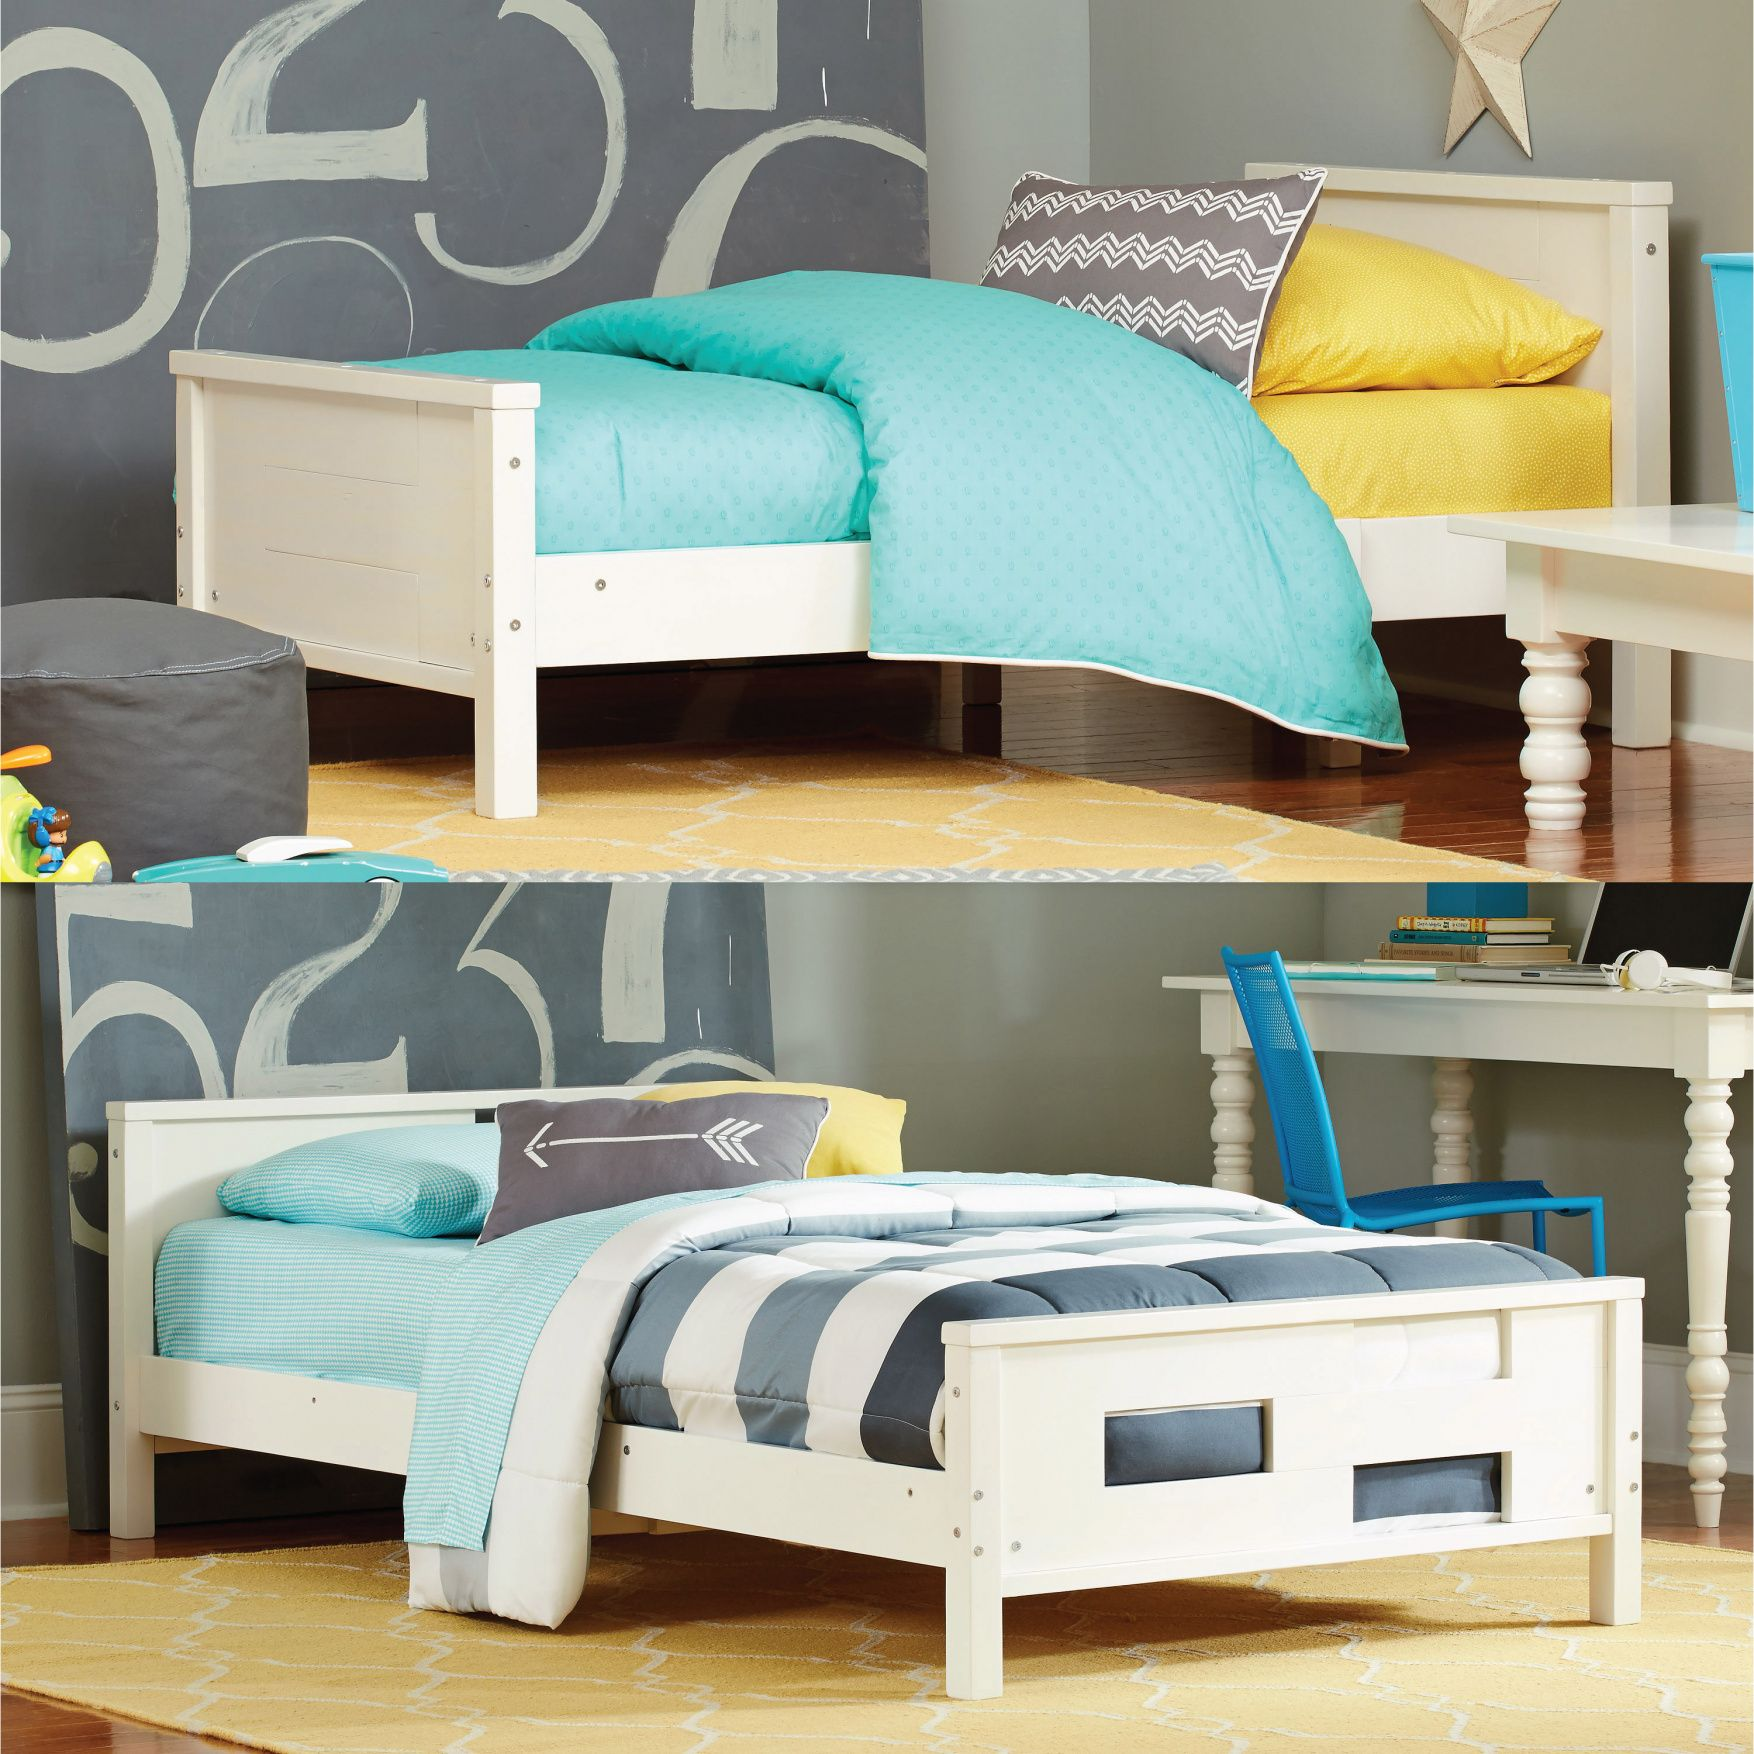 Ordinaire 99+ Toddler Beds Sears   Decoration Ideas For Bedrooms Check More At Http:/